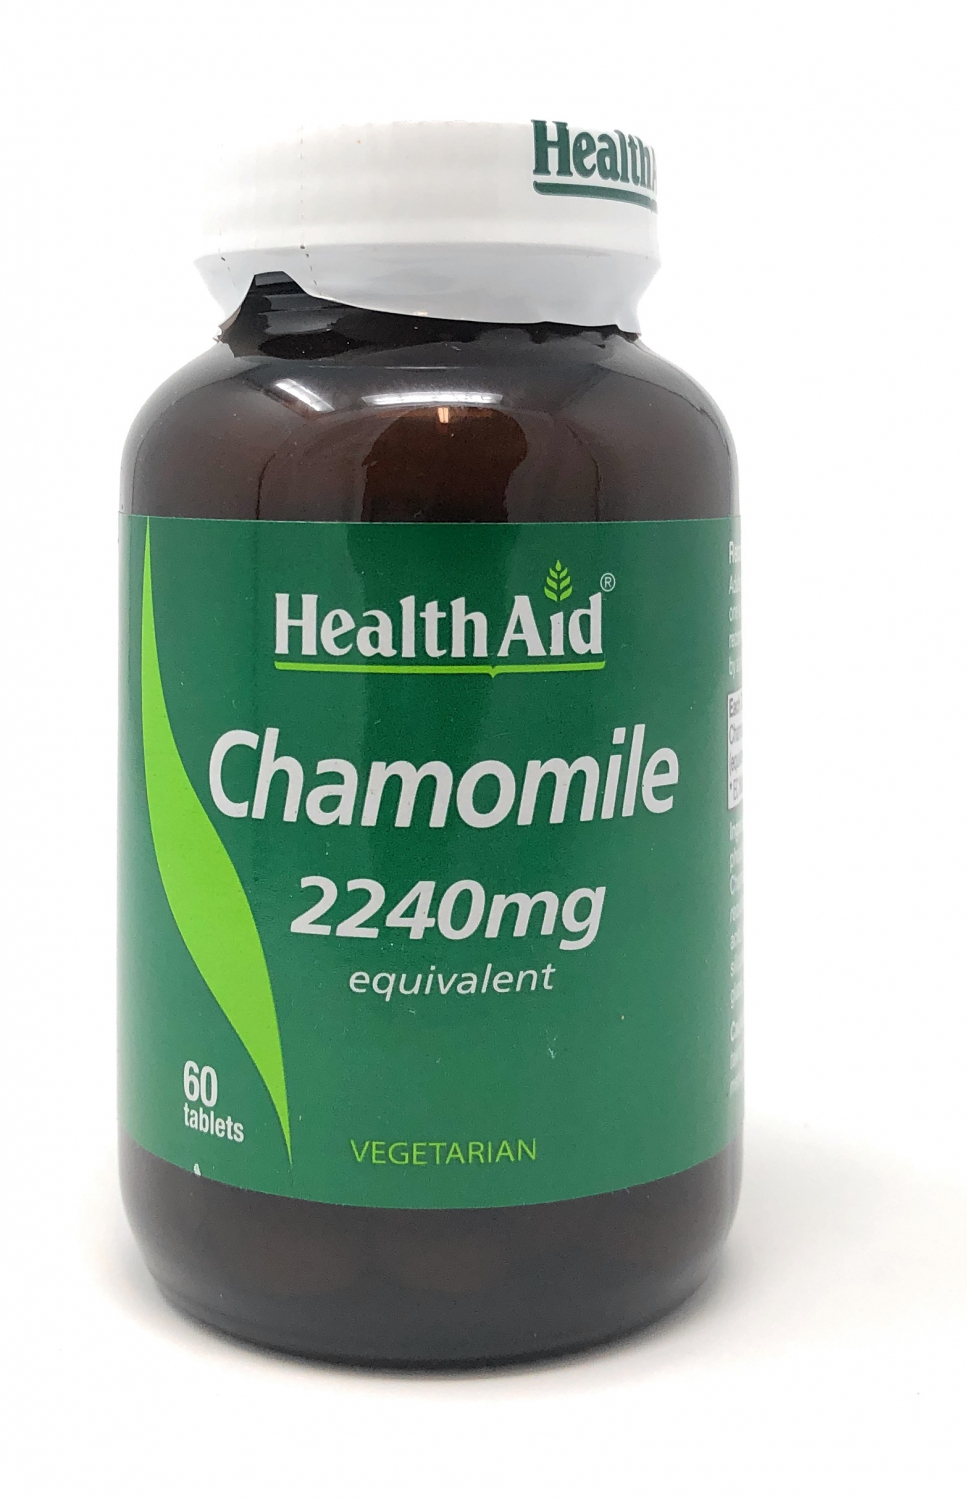 HealthAid Chamomile (Kamille) 2240mg equivalent 60 Tabletten